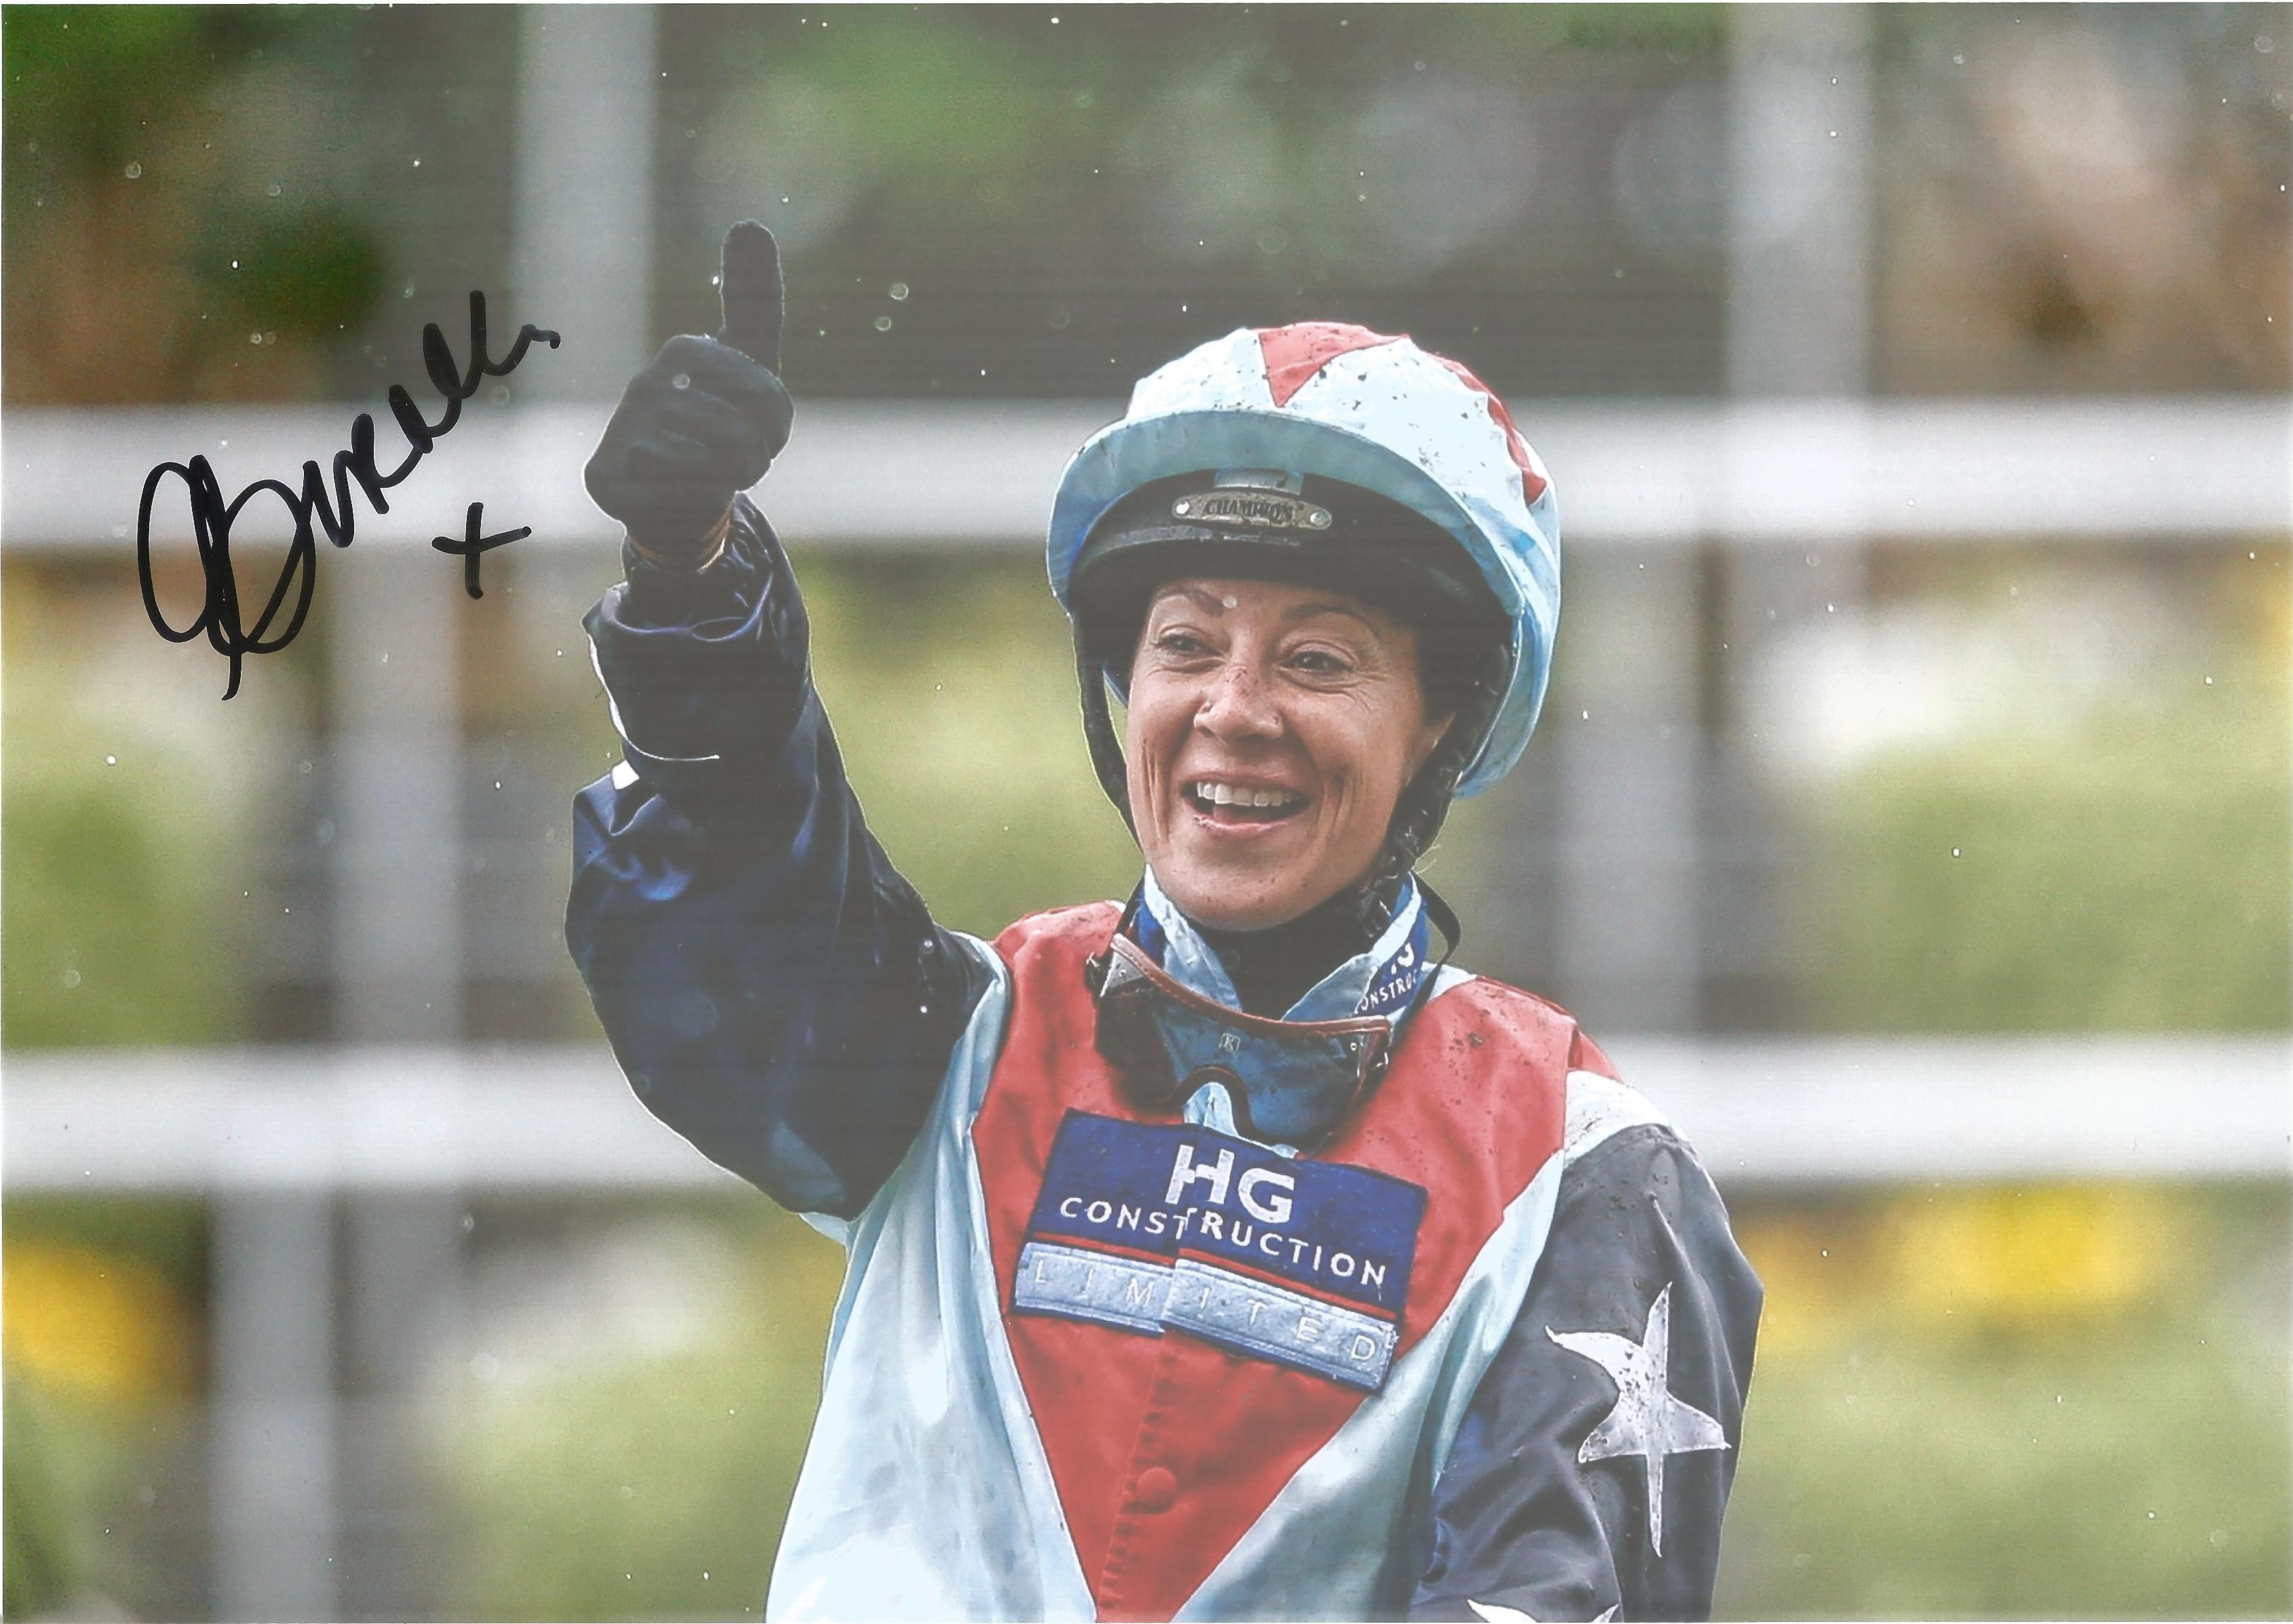 Hayley Turner Signed Horse Racing Jockey 8x12 Photo. Good condition. All autographs come with a